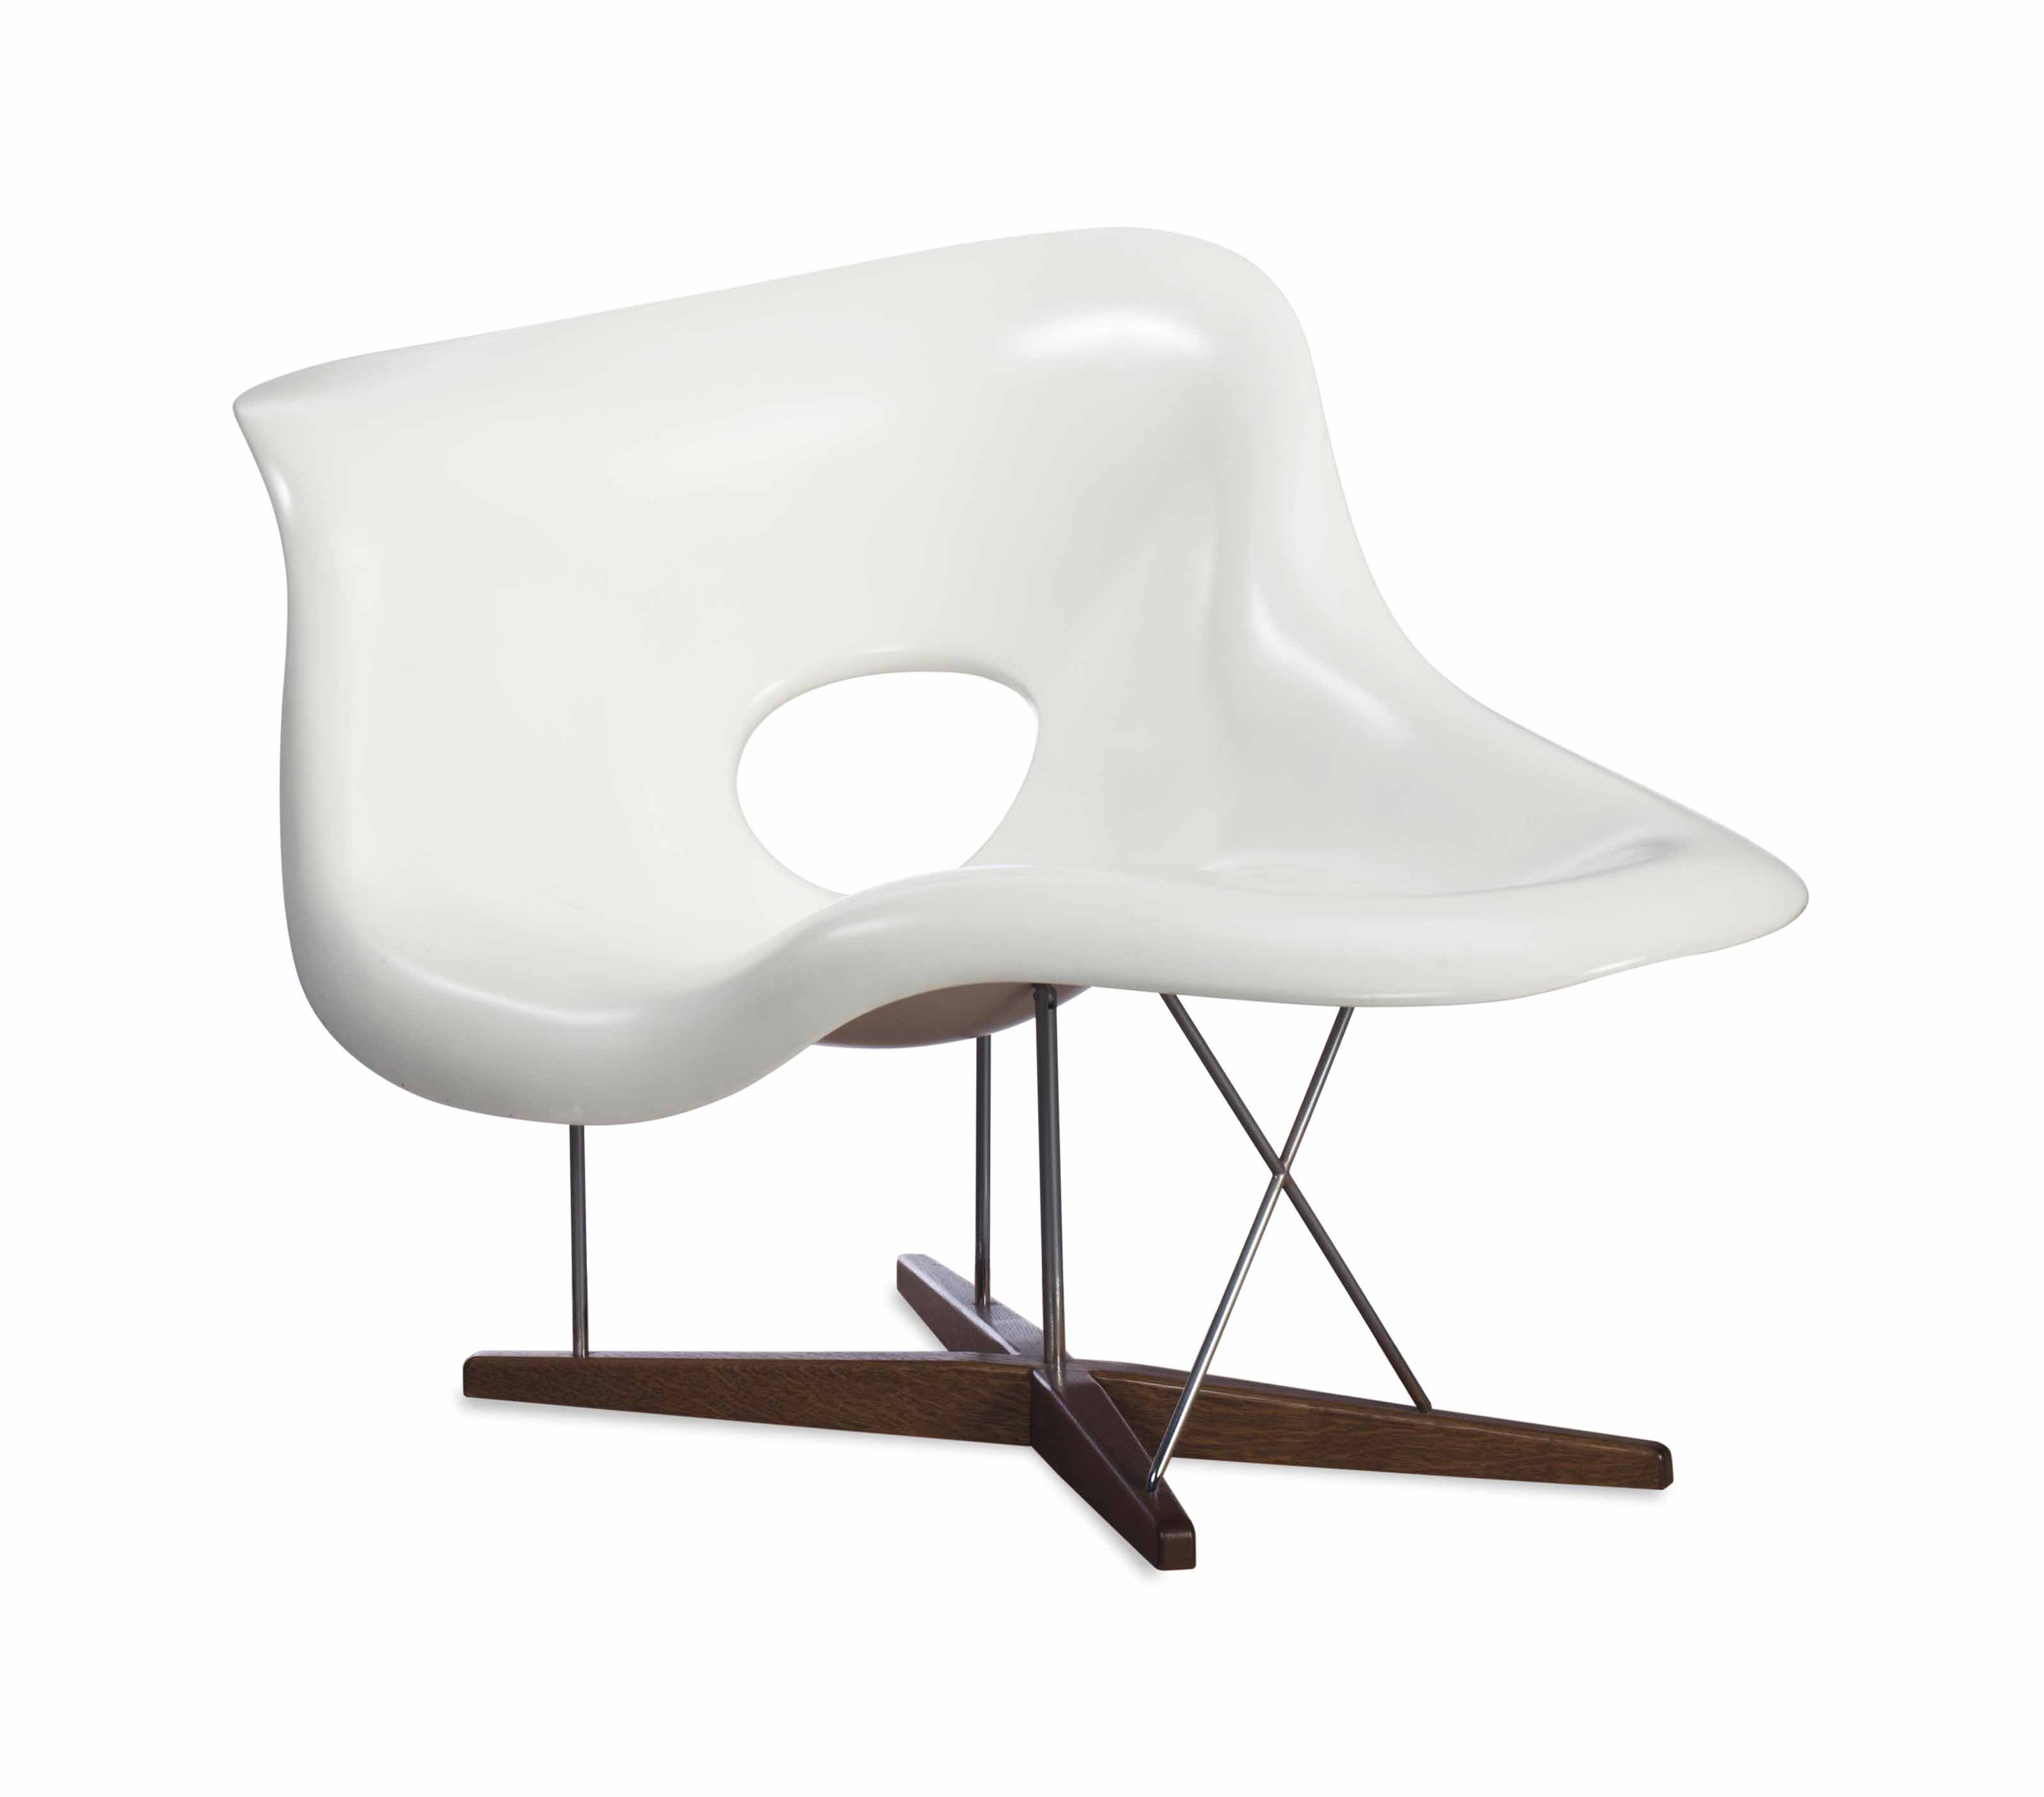 La Chaise Lounge Chair A White Fiberglass Aluminum And Oak La Chaise Lounge Chair